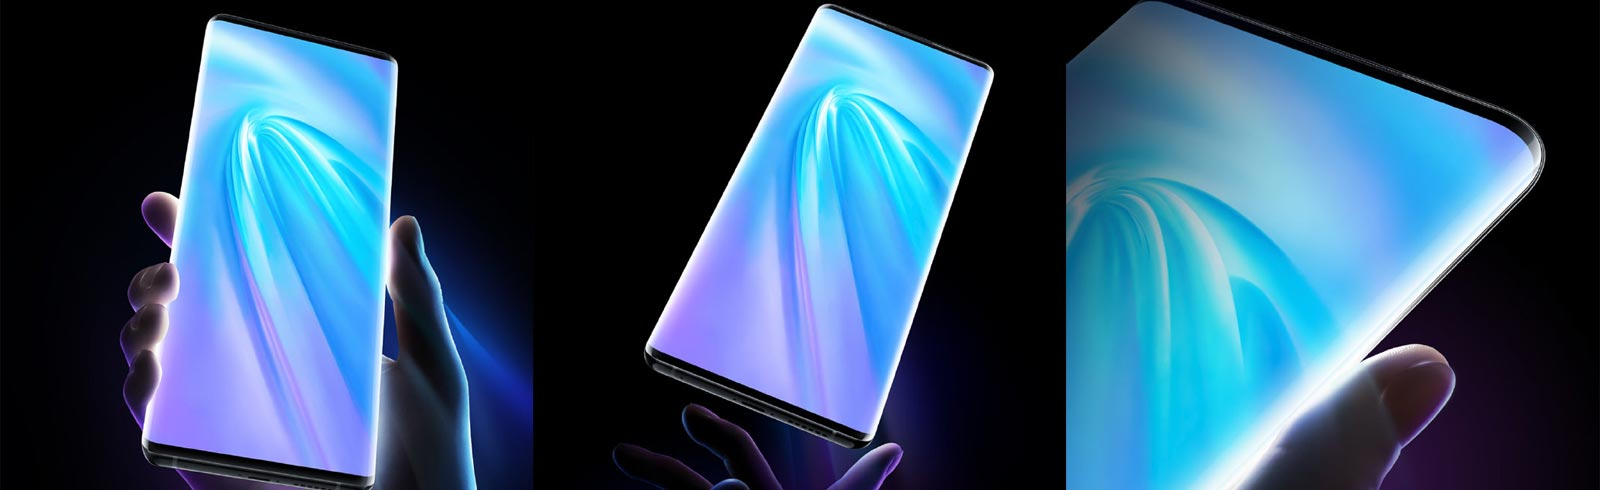 Vivo NEX 3 5G appears on official renders unveiling its front design